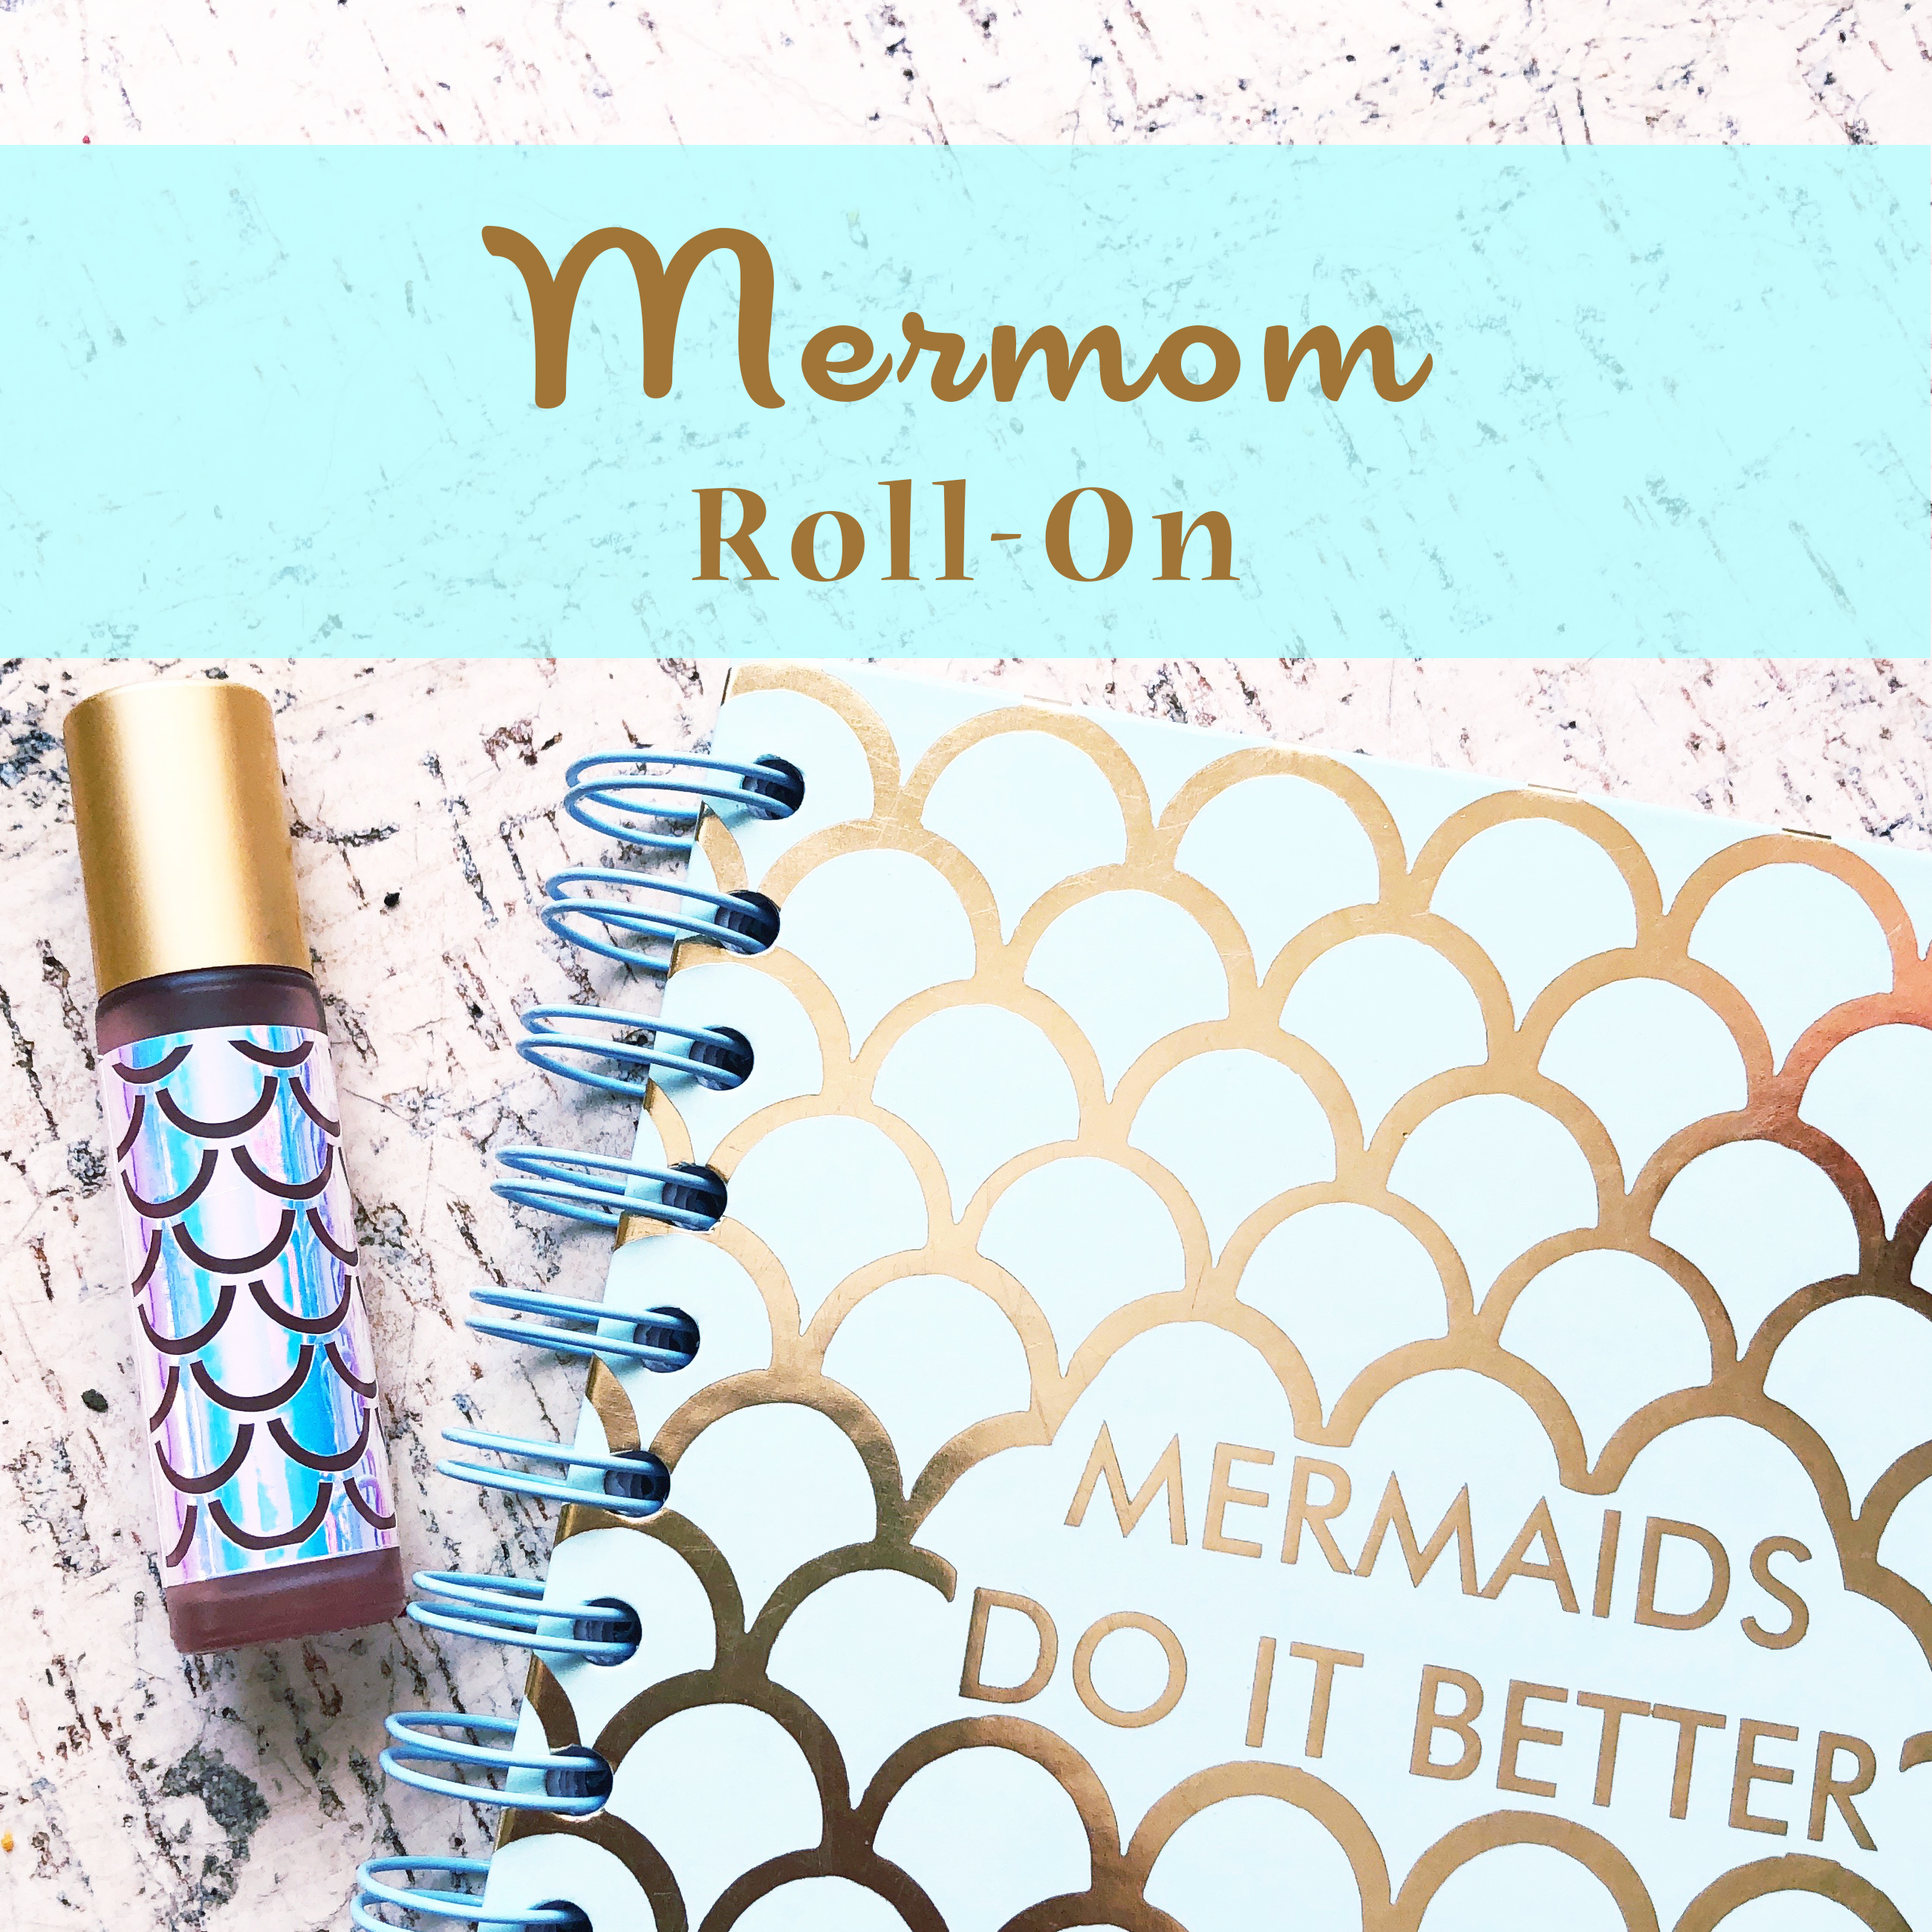 Mermom Roll-On Recipe from Bubblegum Sass